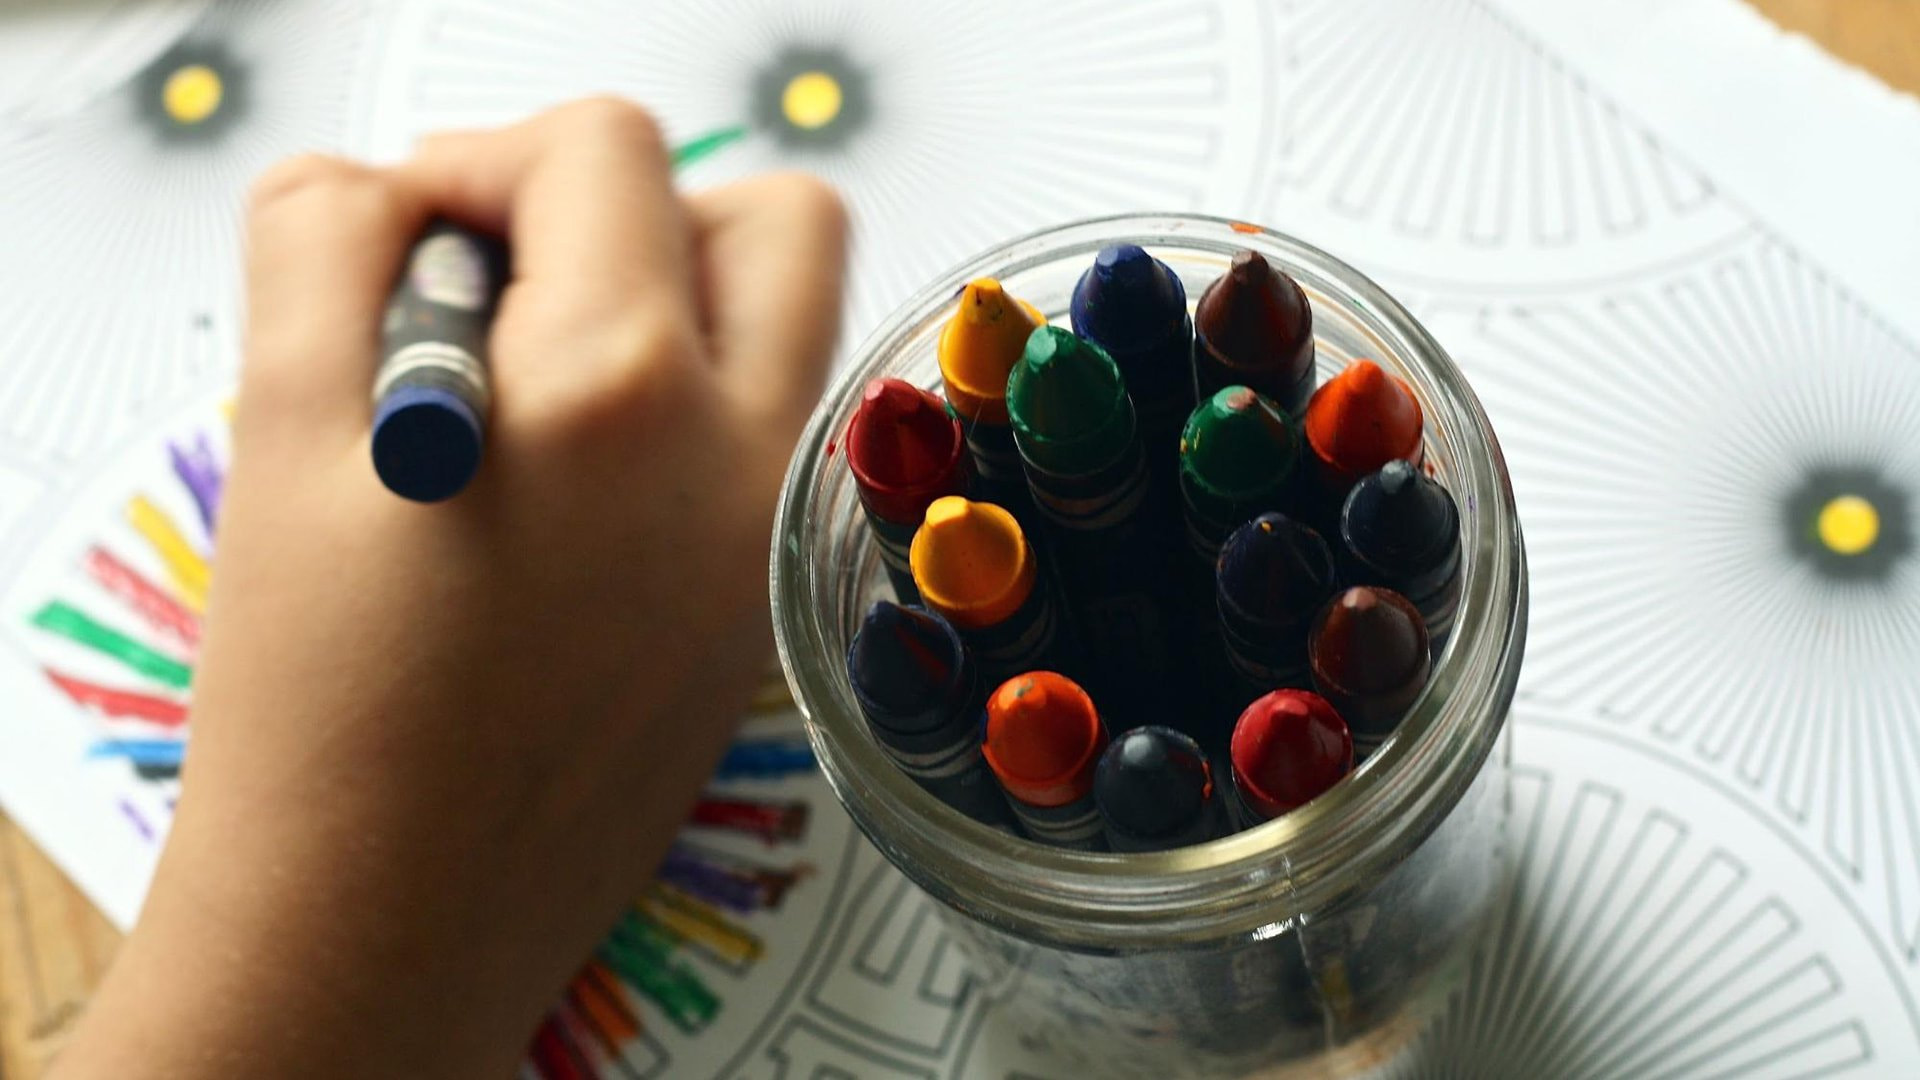 Child coloring an illustration with crayons